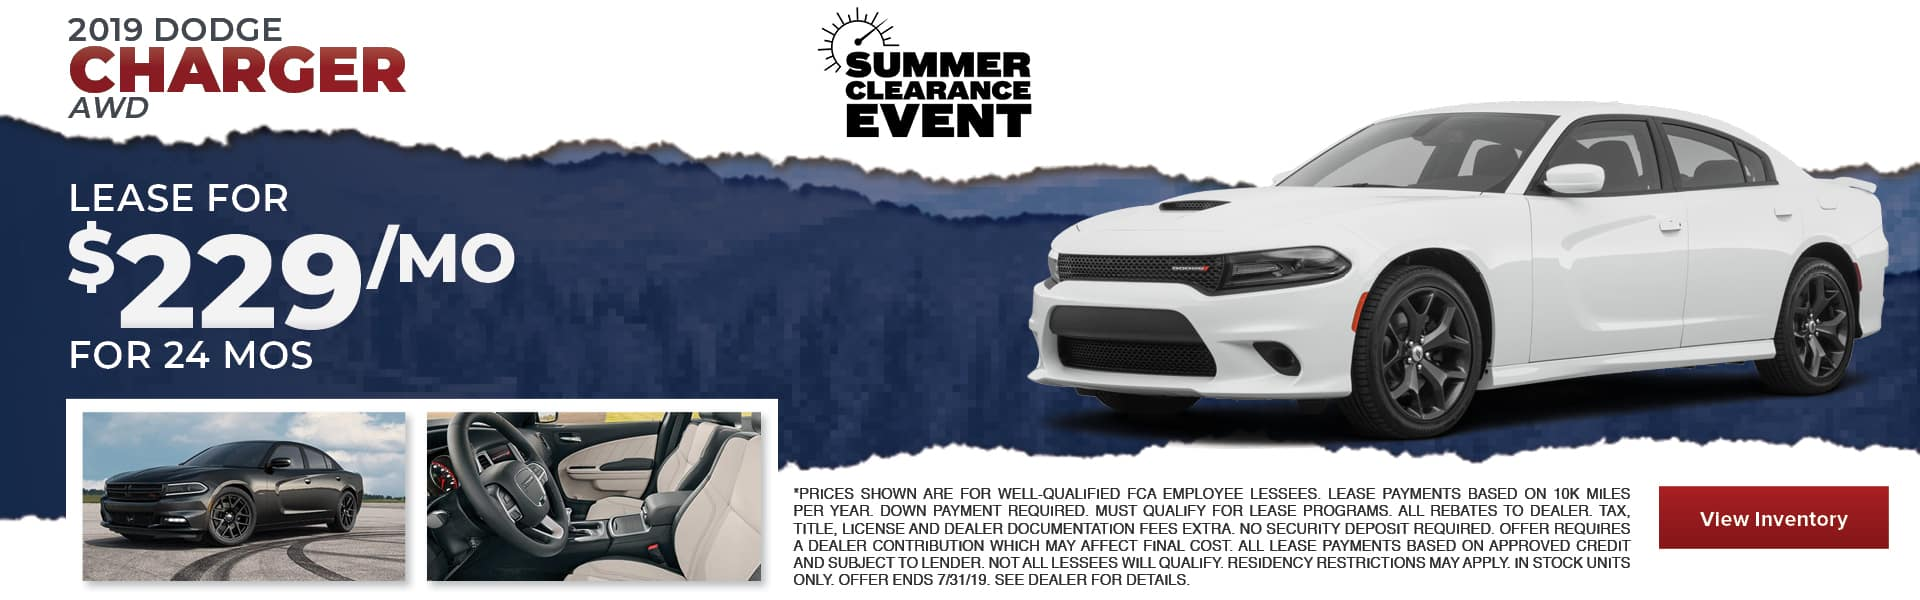 New DODGE Charger for Sale in Pinckney, MI